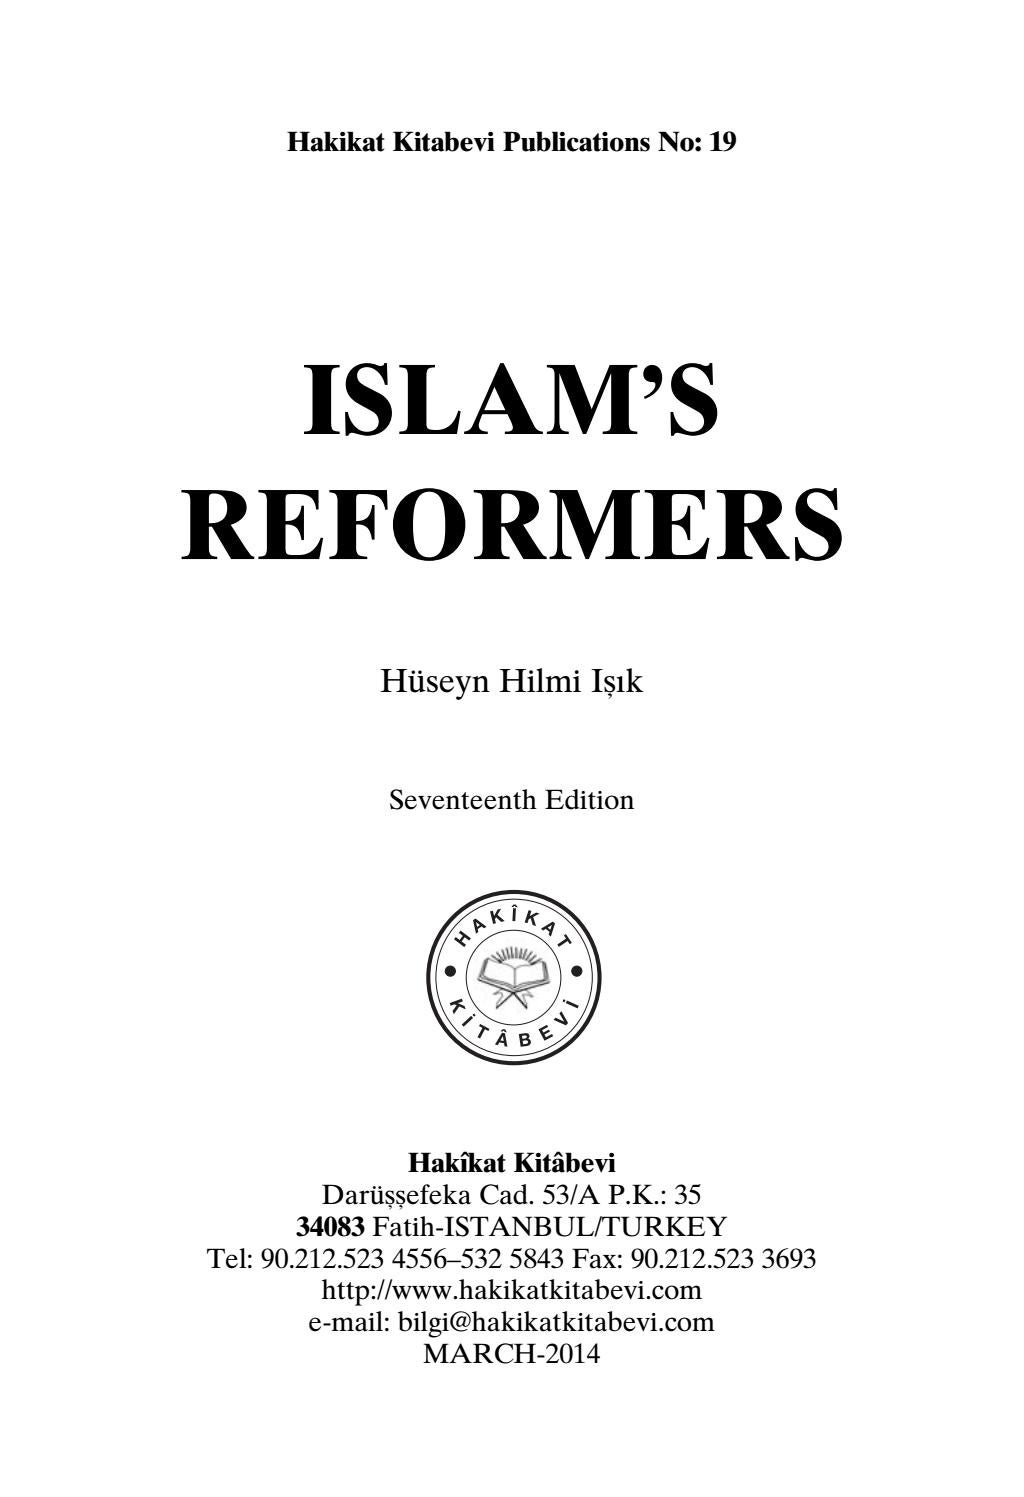 Islam's Reformers by bookdistributor55 - issuu